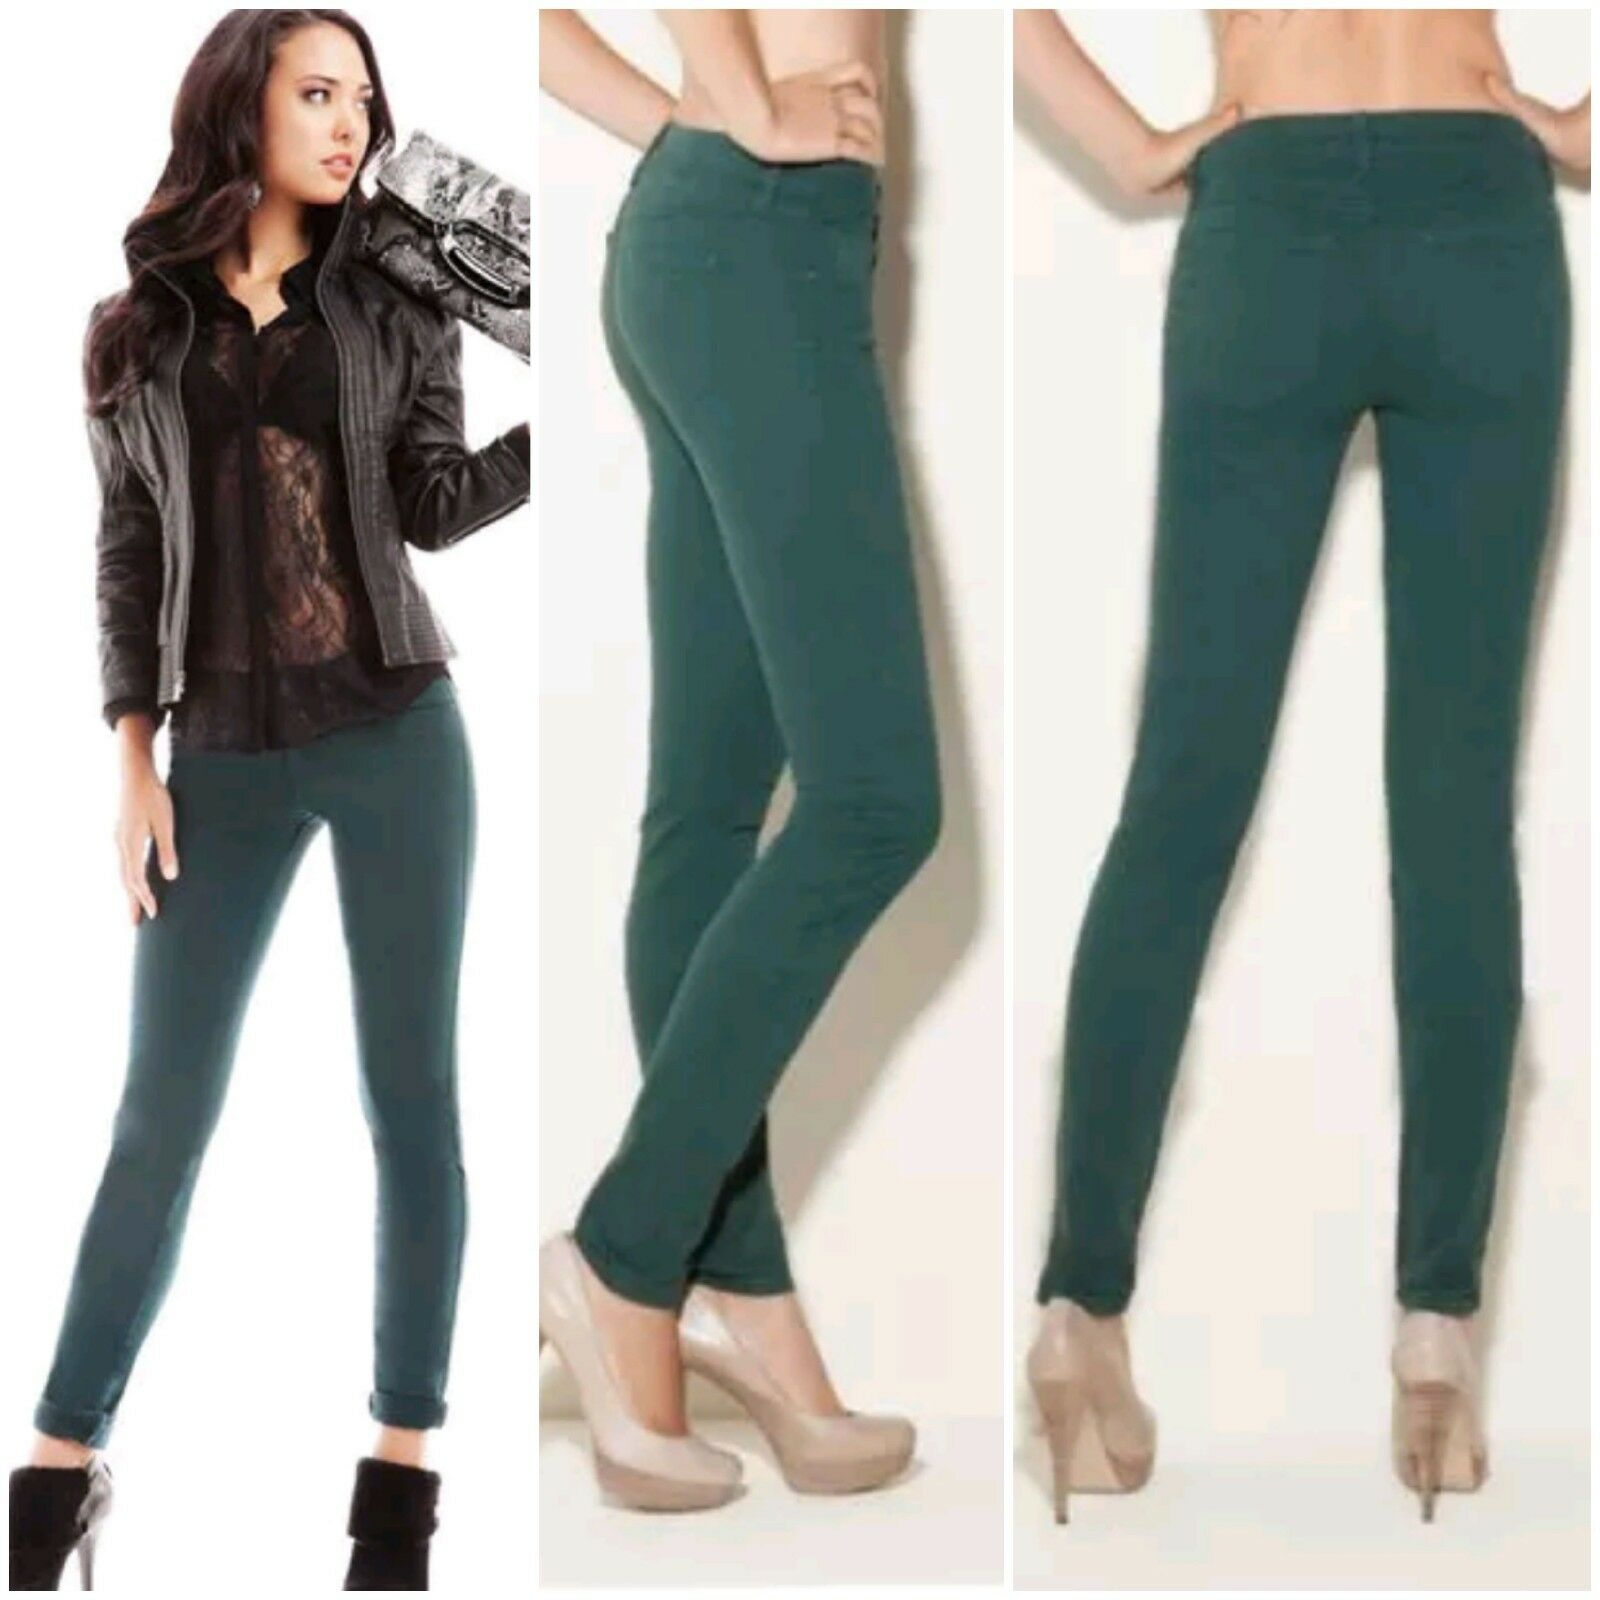 NWT Guess Brittney Skinny green colord Jeans pants size 24